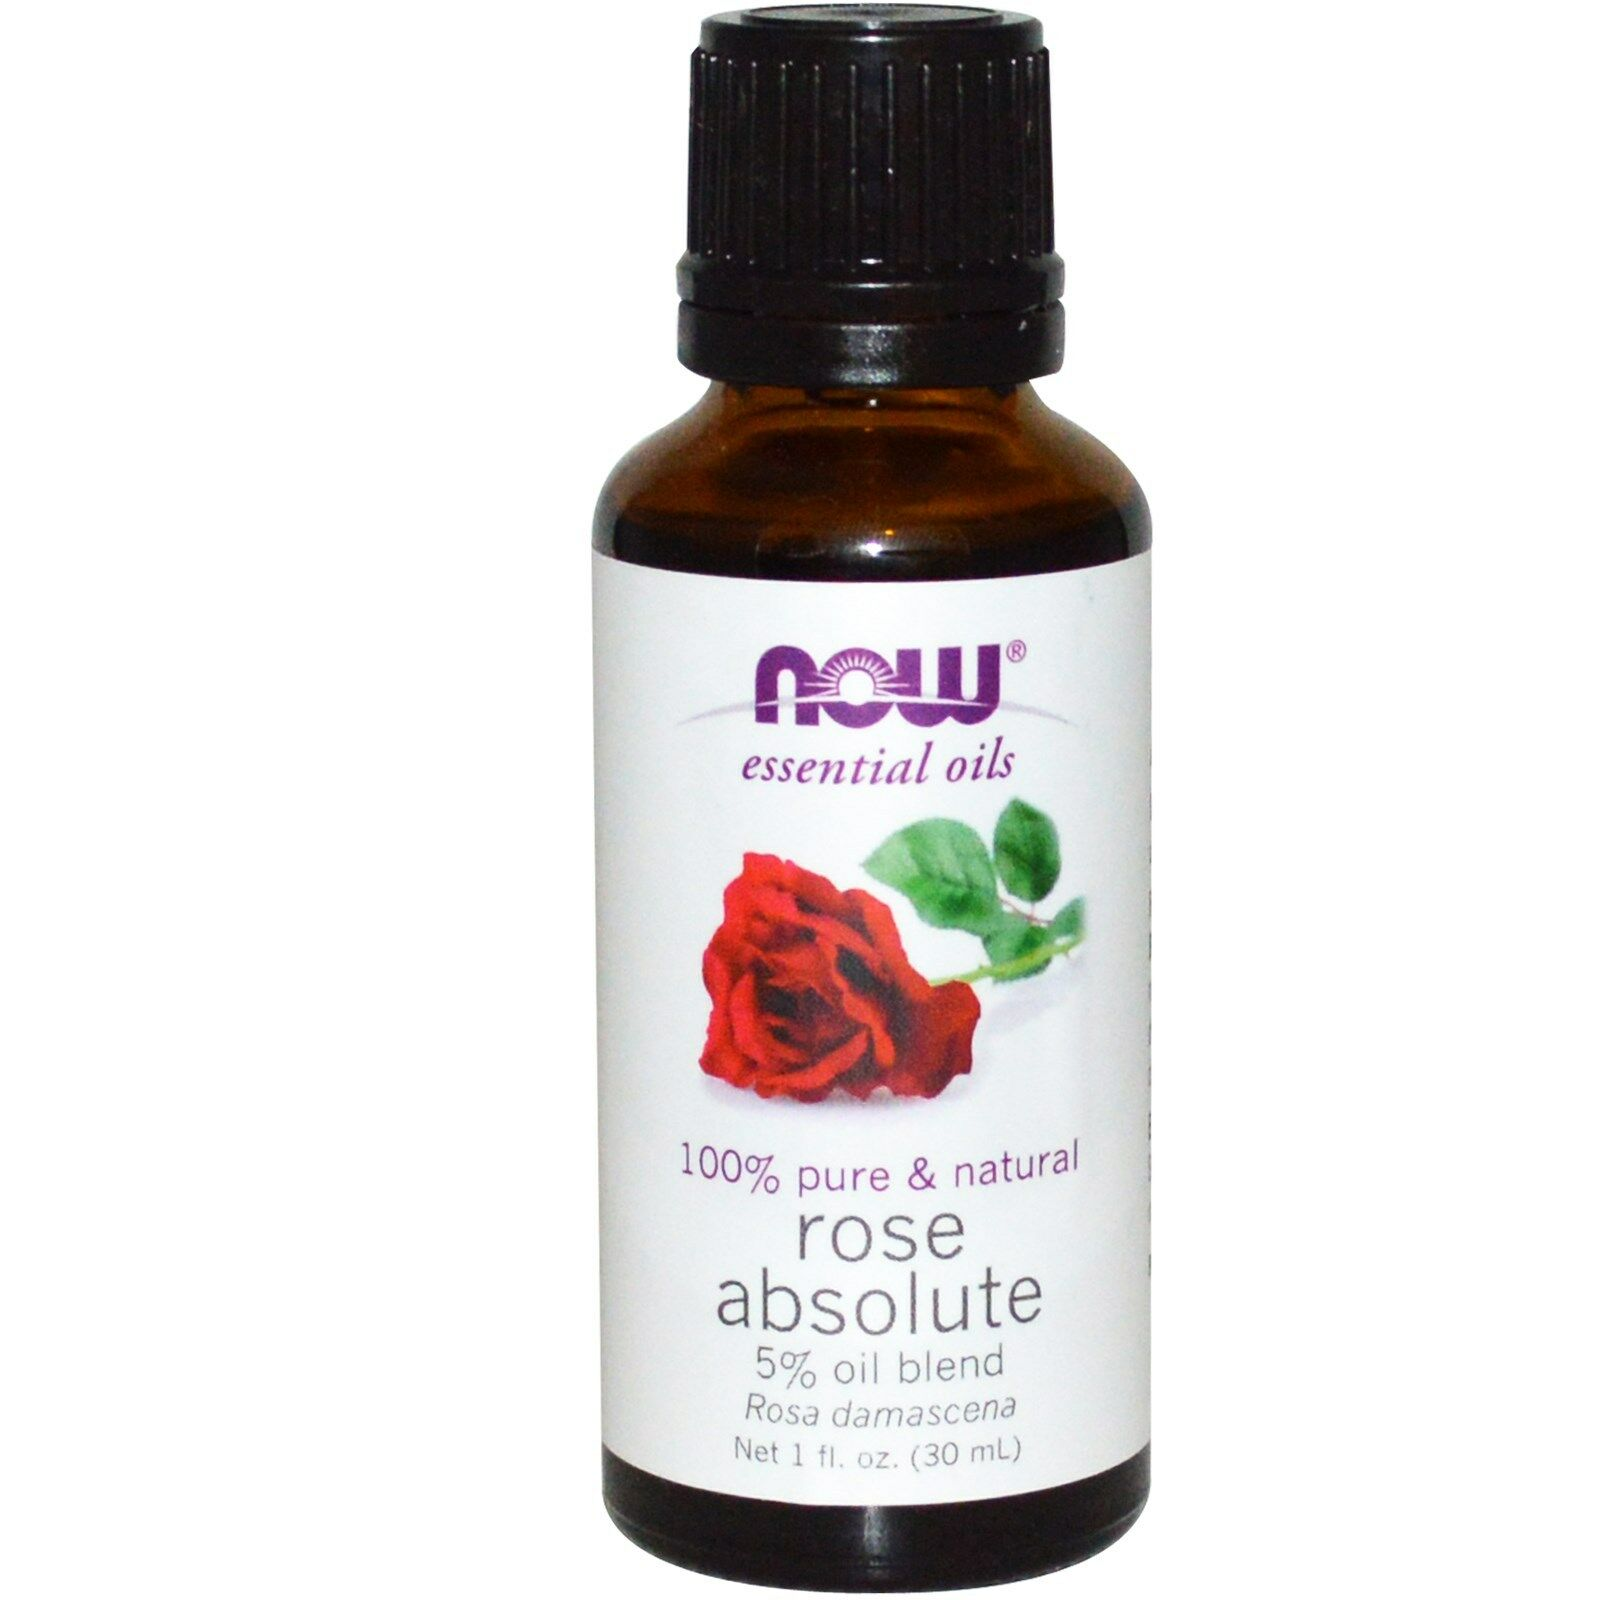 NOW Foods 1 oz Essential Oils and Blend Oils - FREE SHIPPING! Rose Absolute 5% Blend